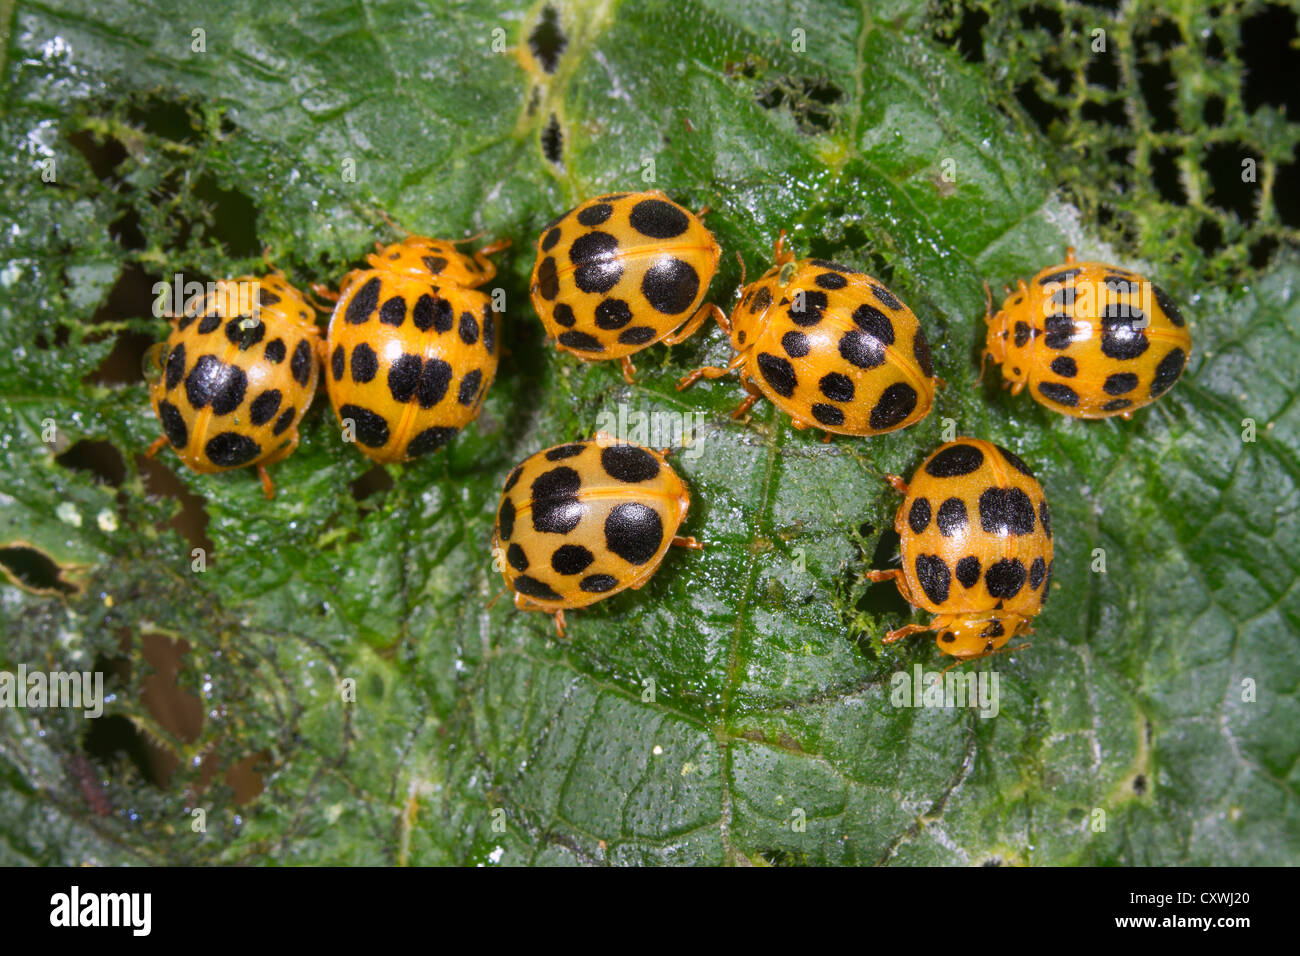 A group of 28-spotted potato ladybirds (Epilachna vigintioctopunctata) on a leaf. - Stock Image